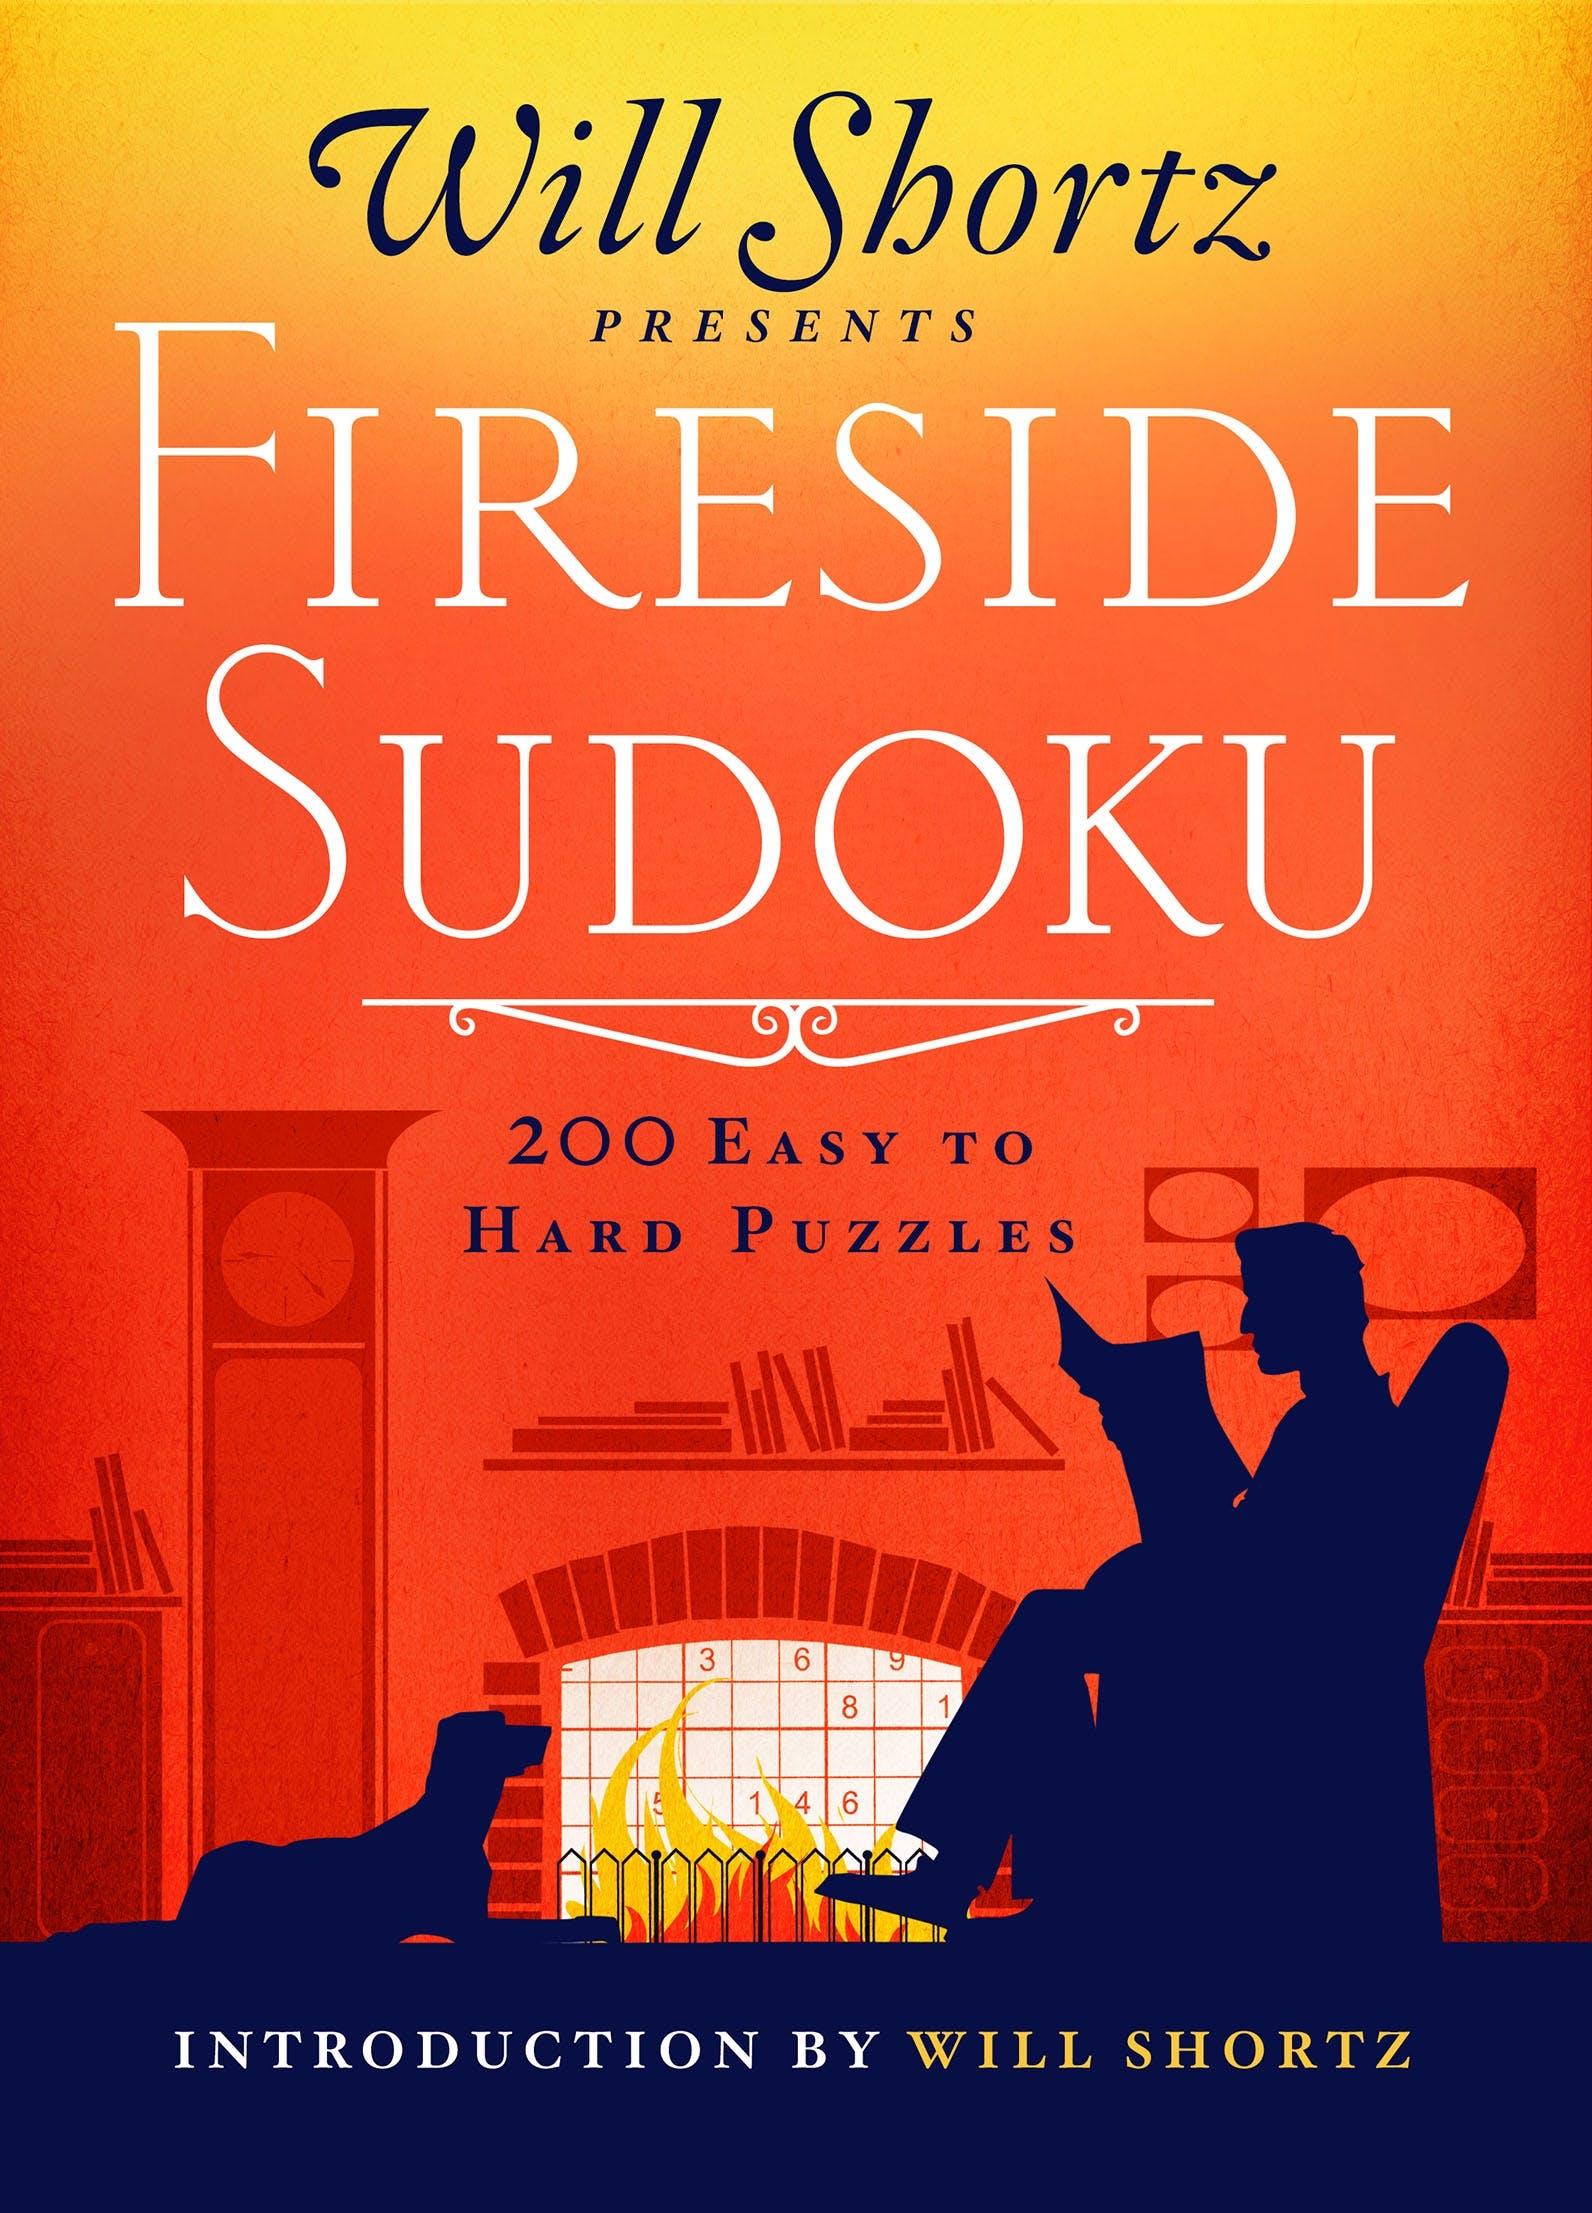 Image of Will Shortz Presents Fireside Sudoku: 200 Easy to Hard Puzzles